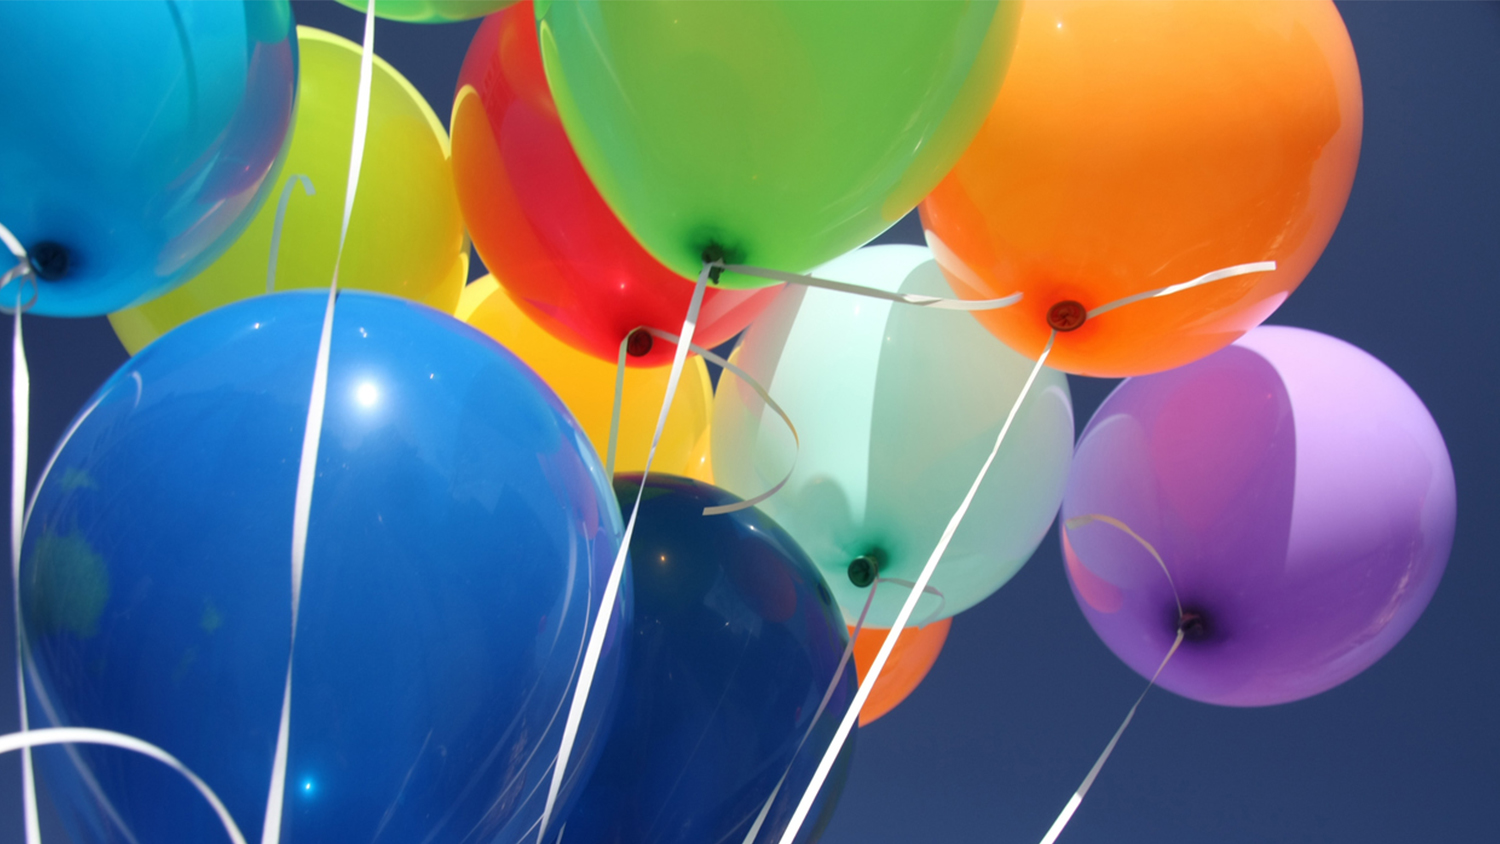 rainbowballoons-blog-052417